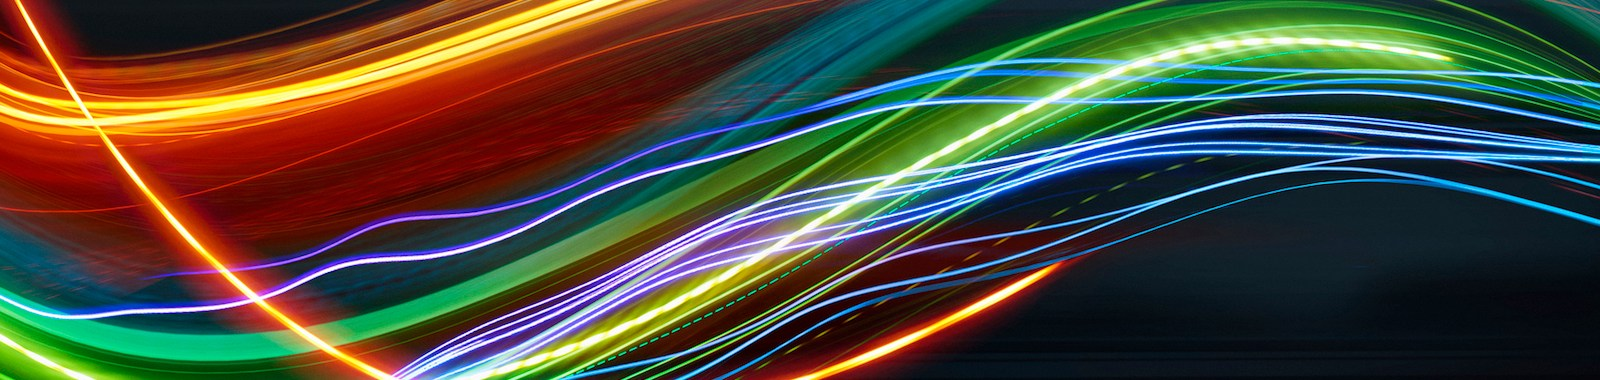 Blurred light trails against blurred black background